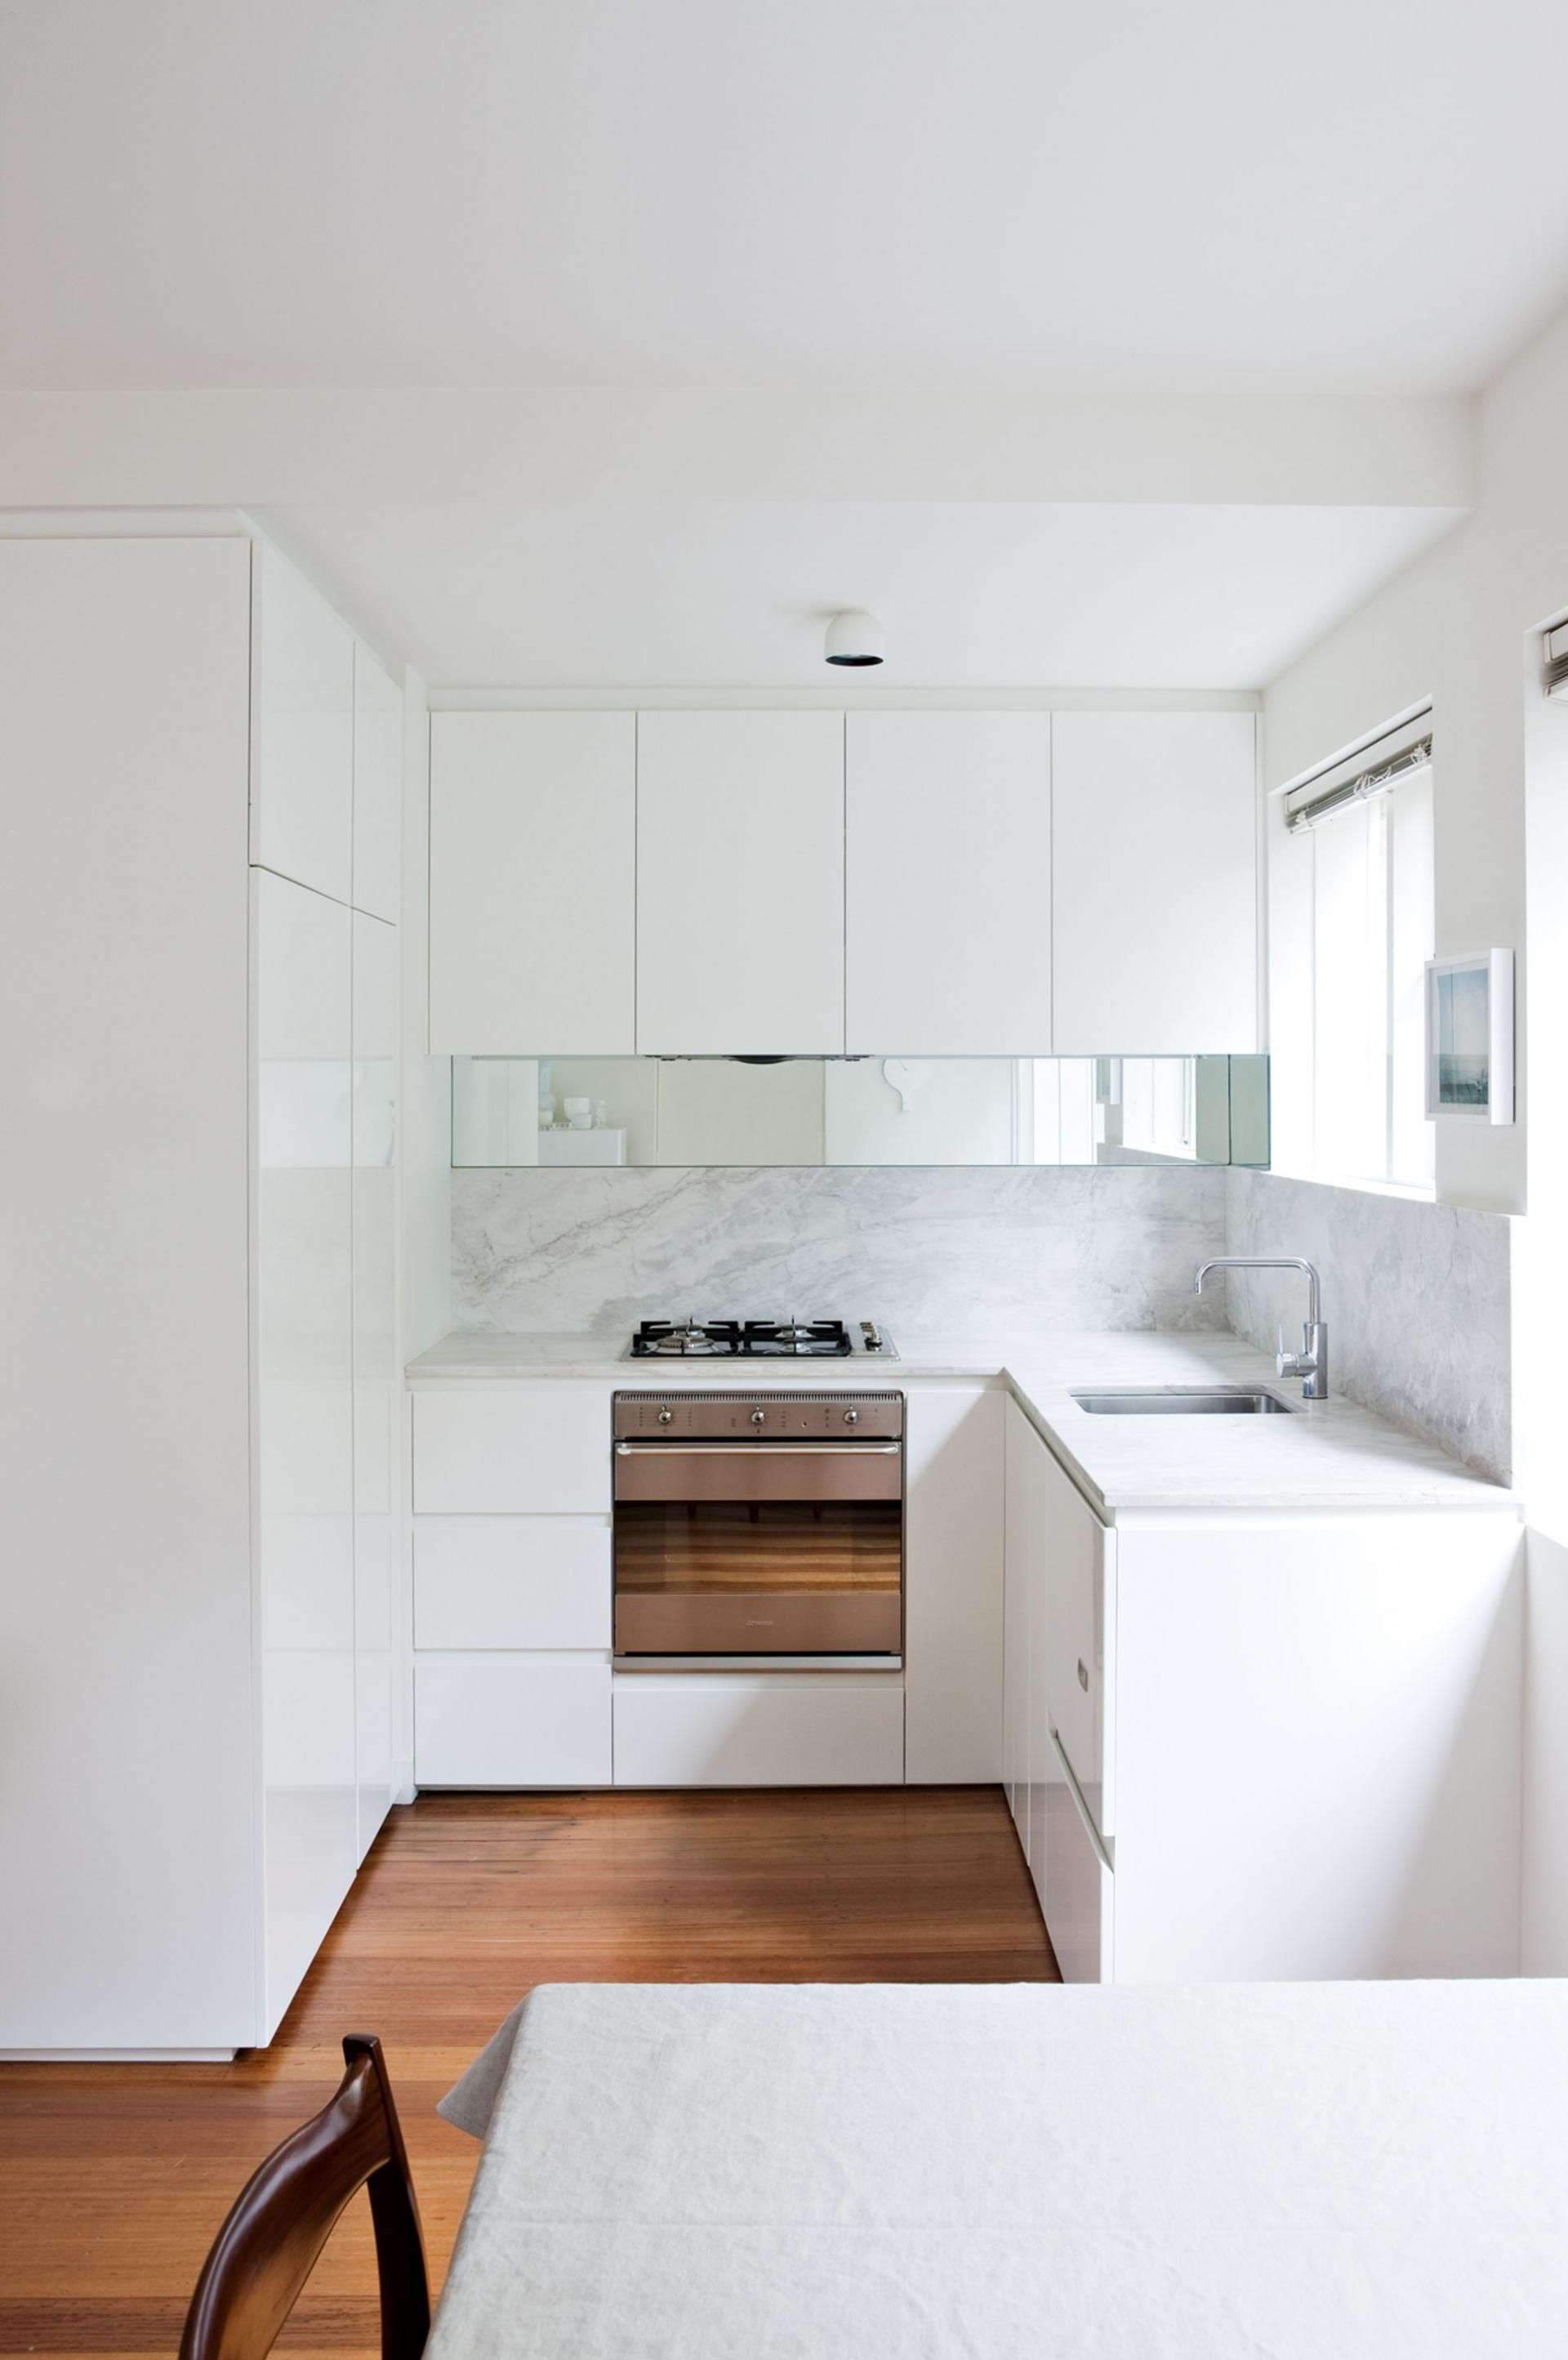 Marvelous Small Kitchen Design Ideas. Photography By Jason Busch. Styling By Megan  Morton.